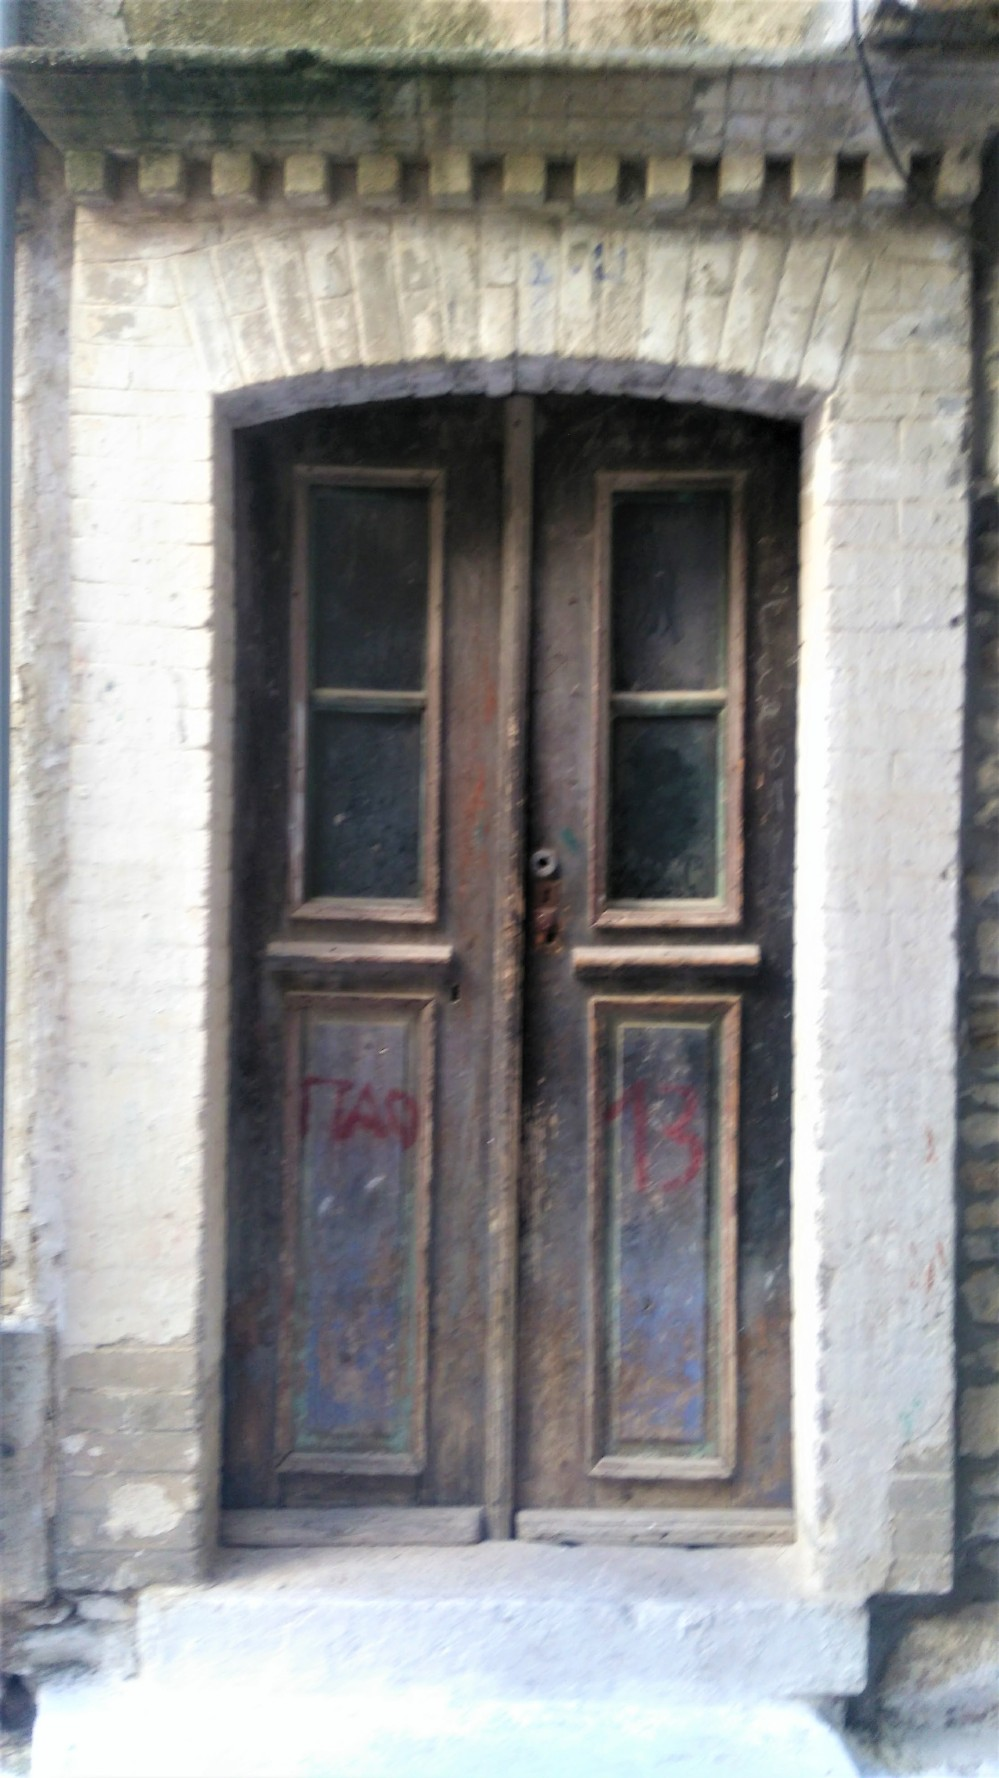 Doorway_0069 - Copy